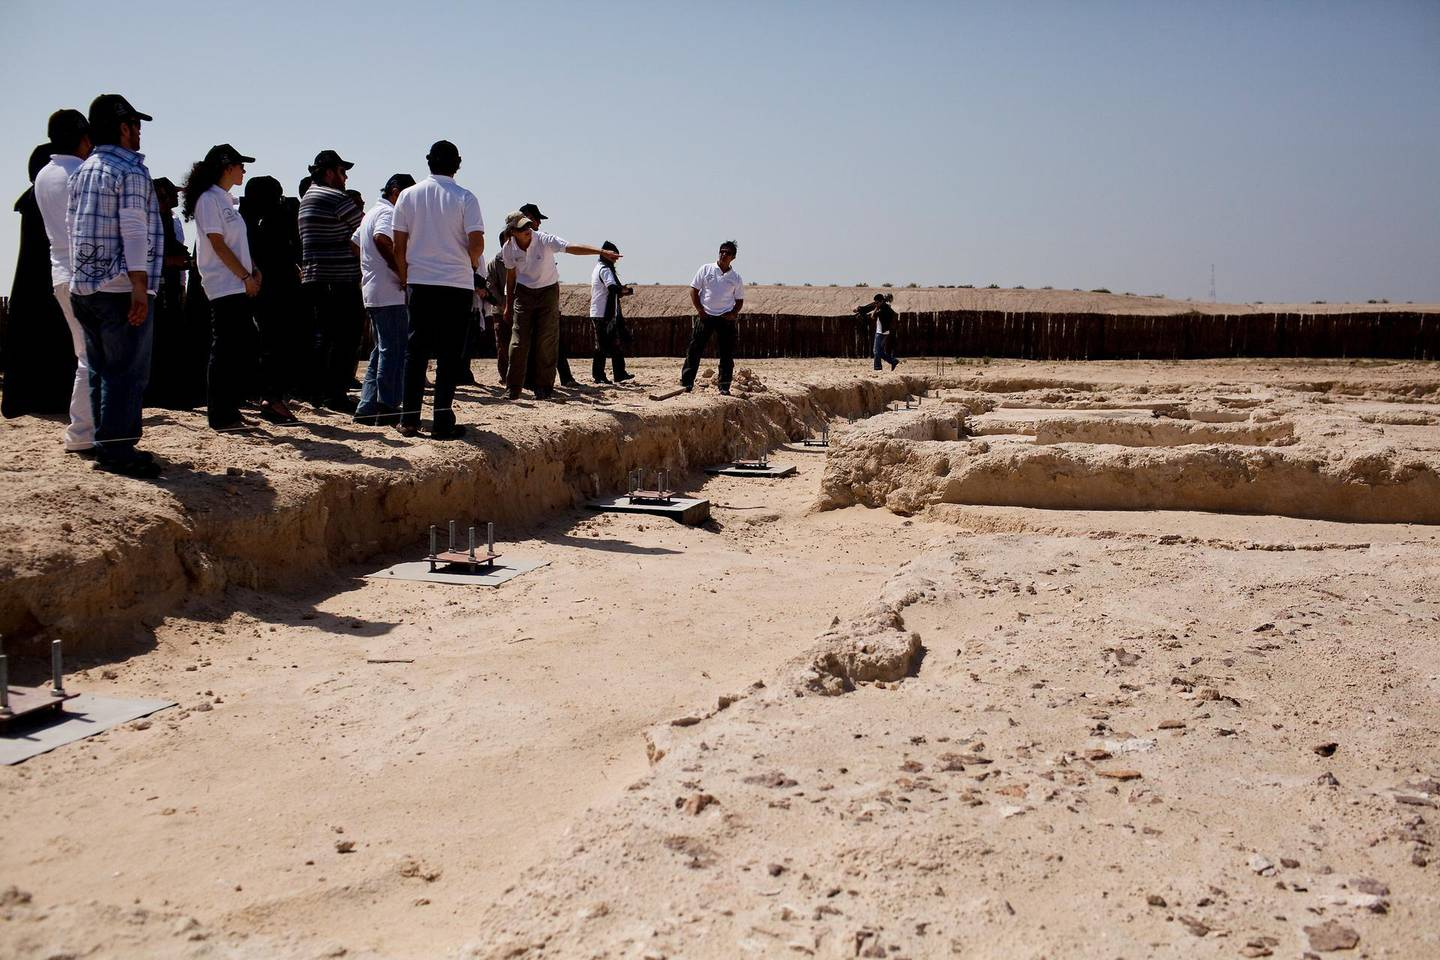 """19/02/2010 - Abu Dhabi, UAE - Thirty-six archaeological sites have been discovered throughout Sir Bani Yas.  One of the oldest sites is the remains of a pre-Islamic monastery which dates back to 600ÊAD, pictured.  Jalal Luqman, co-owner of one of Abu Dhabi's most active at galleries, held Jalal's Art Trip, for its third year, on Friday February 19, 2010 at Sir Bani Yas Island.  The art trip helps young university students to more established artists to find new outlets for creativity as well as give them motivation and inspiration to continue their art.  Sir Bani Yas Island, is  a natural island located 250 km southwest of Abu Dhabi, is the largest natural island in the United Arab Emirates.  The island which is 87 square km was established by the late ruler and founder of the UAE, Sheikh Zayed Bin Sultan Al Nahyan, in 1971 as a wildlife reserve.  The island is home to animals such as cheetahs, giraffes, gazelle, oryx, ostrich, and sea turtles.  In a January 6, 2010 article in The National Luqman said, """"The idea of the trip is not the trip.  The real thing is for people to see your work be produced from absolutely nothing to a painting that will hang in an exhibition and ideally get sold. Because that is like the epic Ð of being a sold, exhibited artist.Ó  (Andrew Henderson / The National)"""